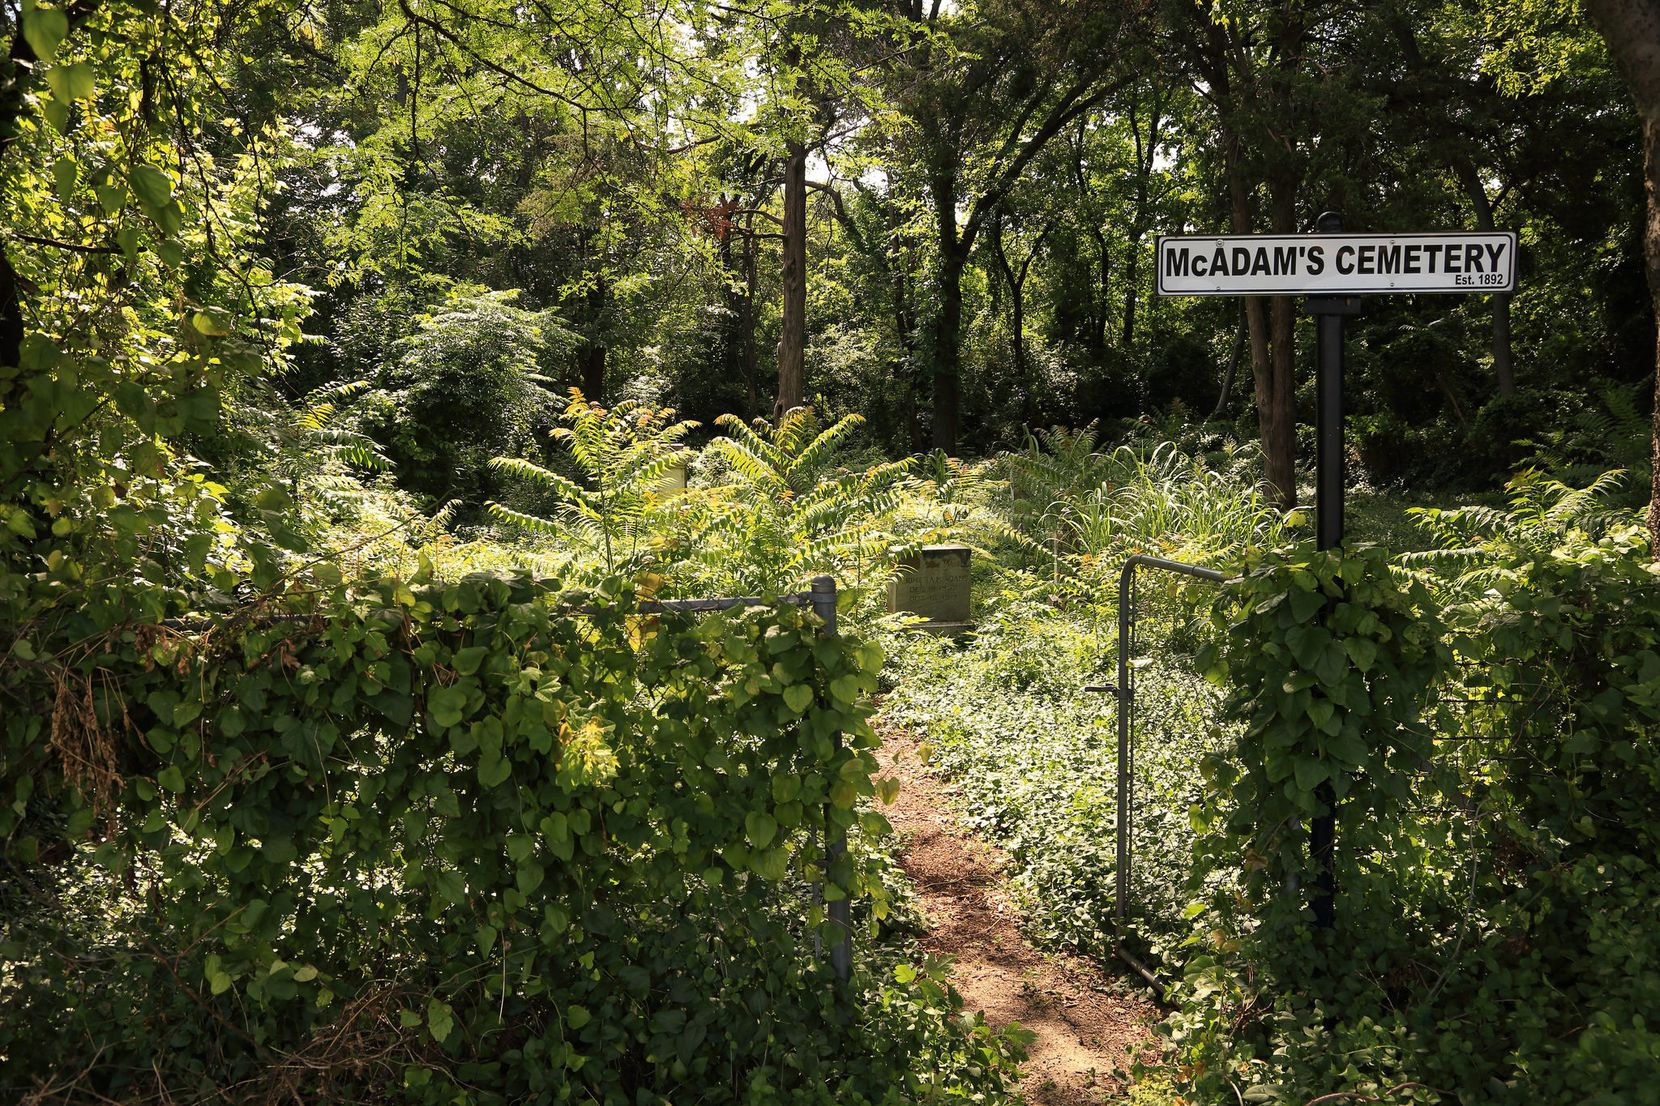 Speaking of weeds, McAdam's Cemetery in Oak Cliff is now buried in foliage following May rains. (Courtesy Barry Kooda)